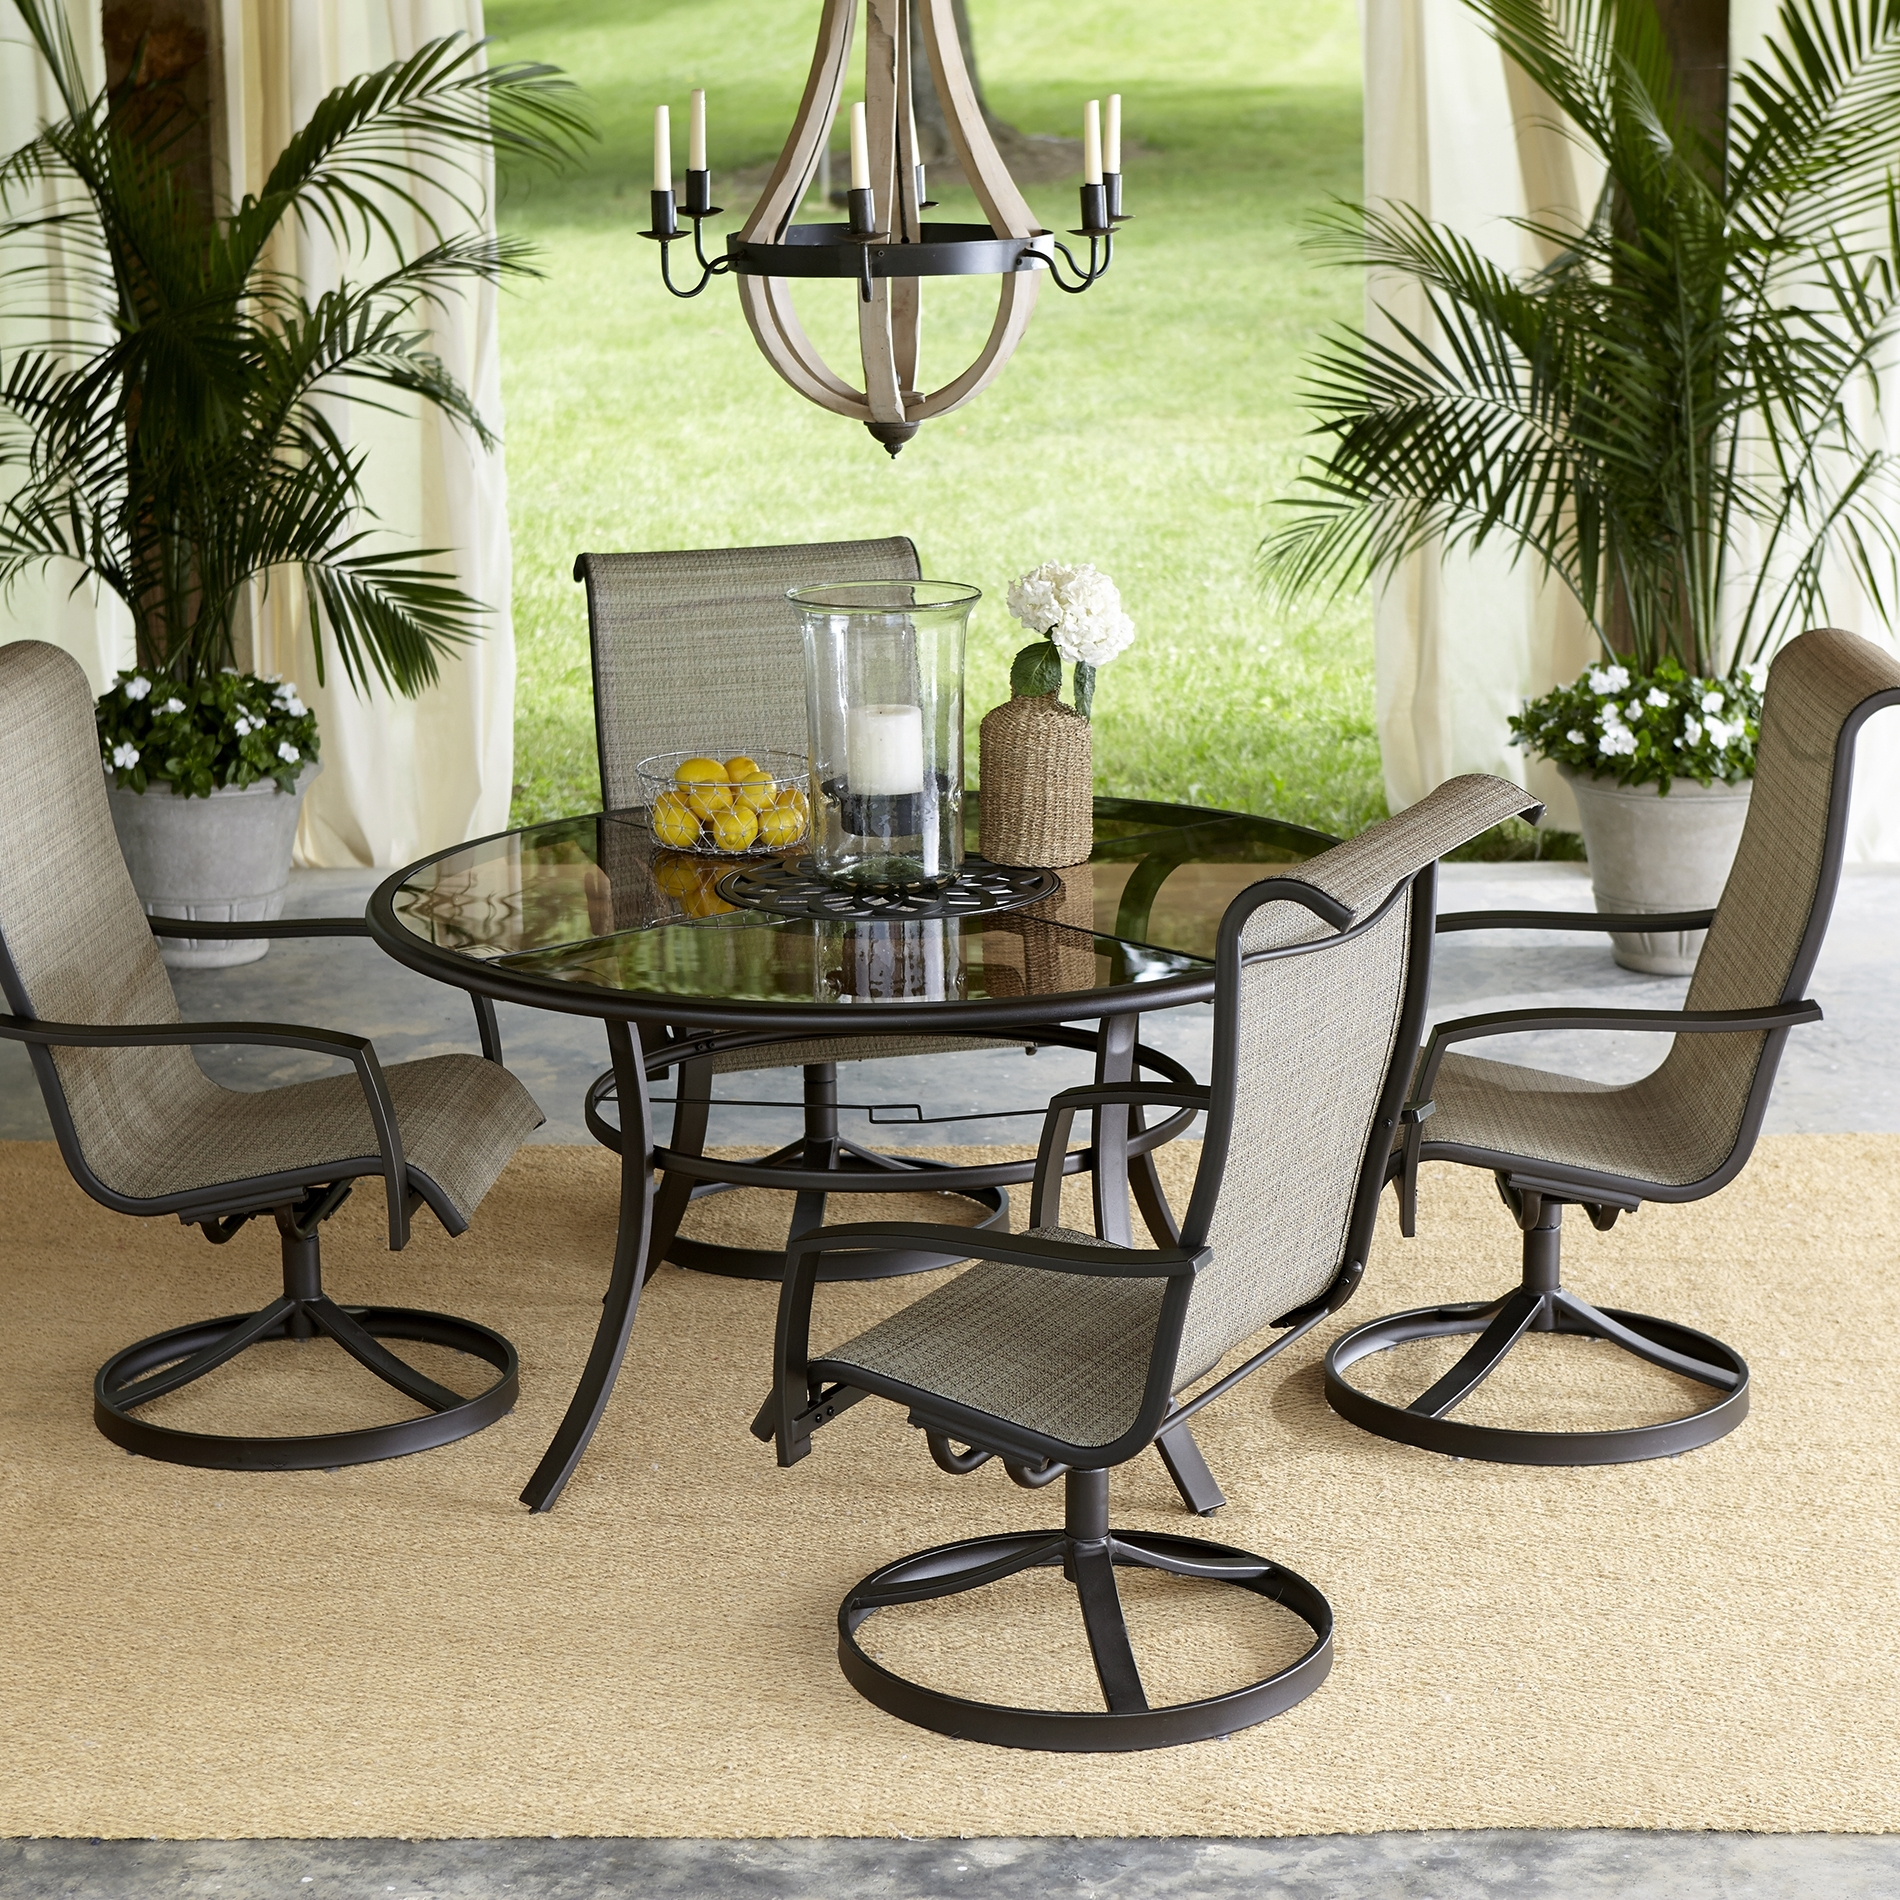 Latest Patio Dining Sets Round Table Furniture Alluring Beautiful Tables Intended For Patio Conversation Dining Sets (View 14 of 20)